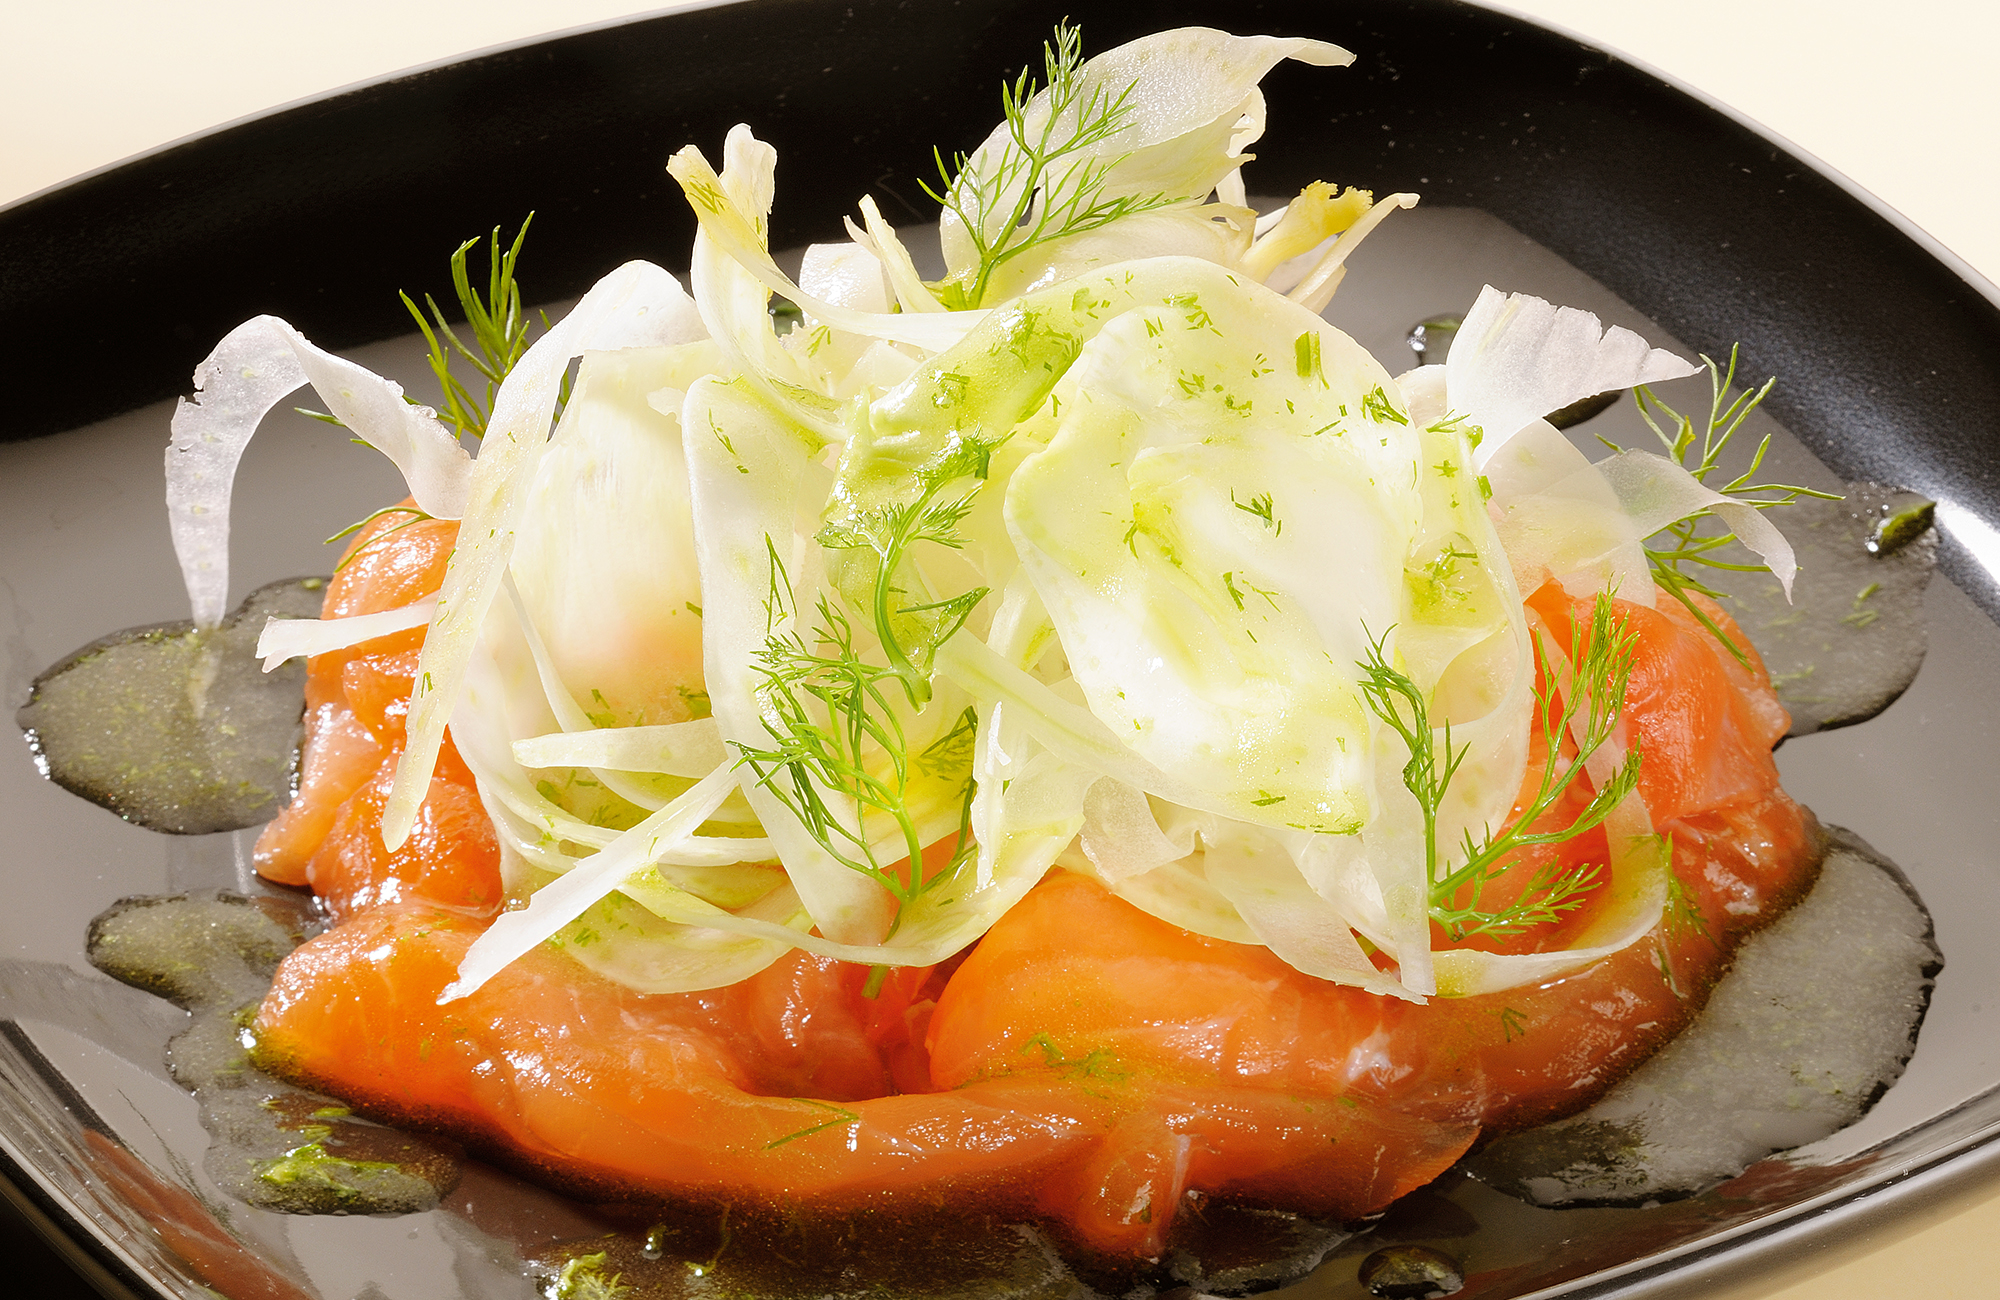 Fresh salmon with fennel salad with vinaigrette based on DolceAgro Mild Condiment - Ponti